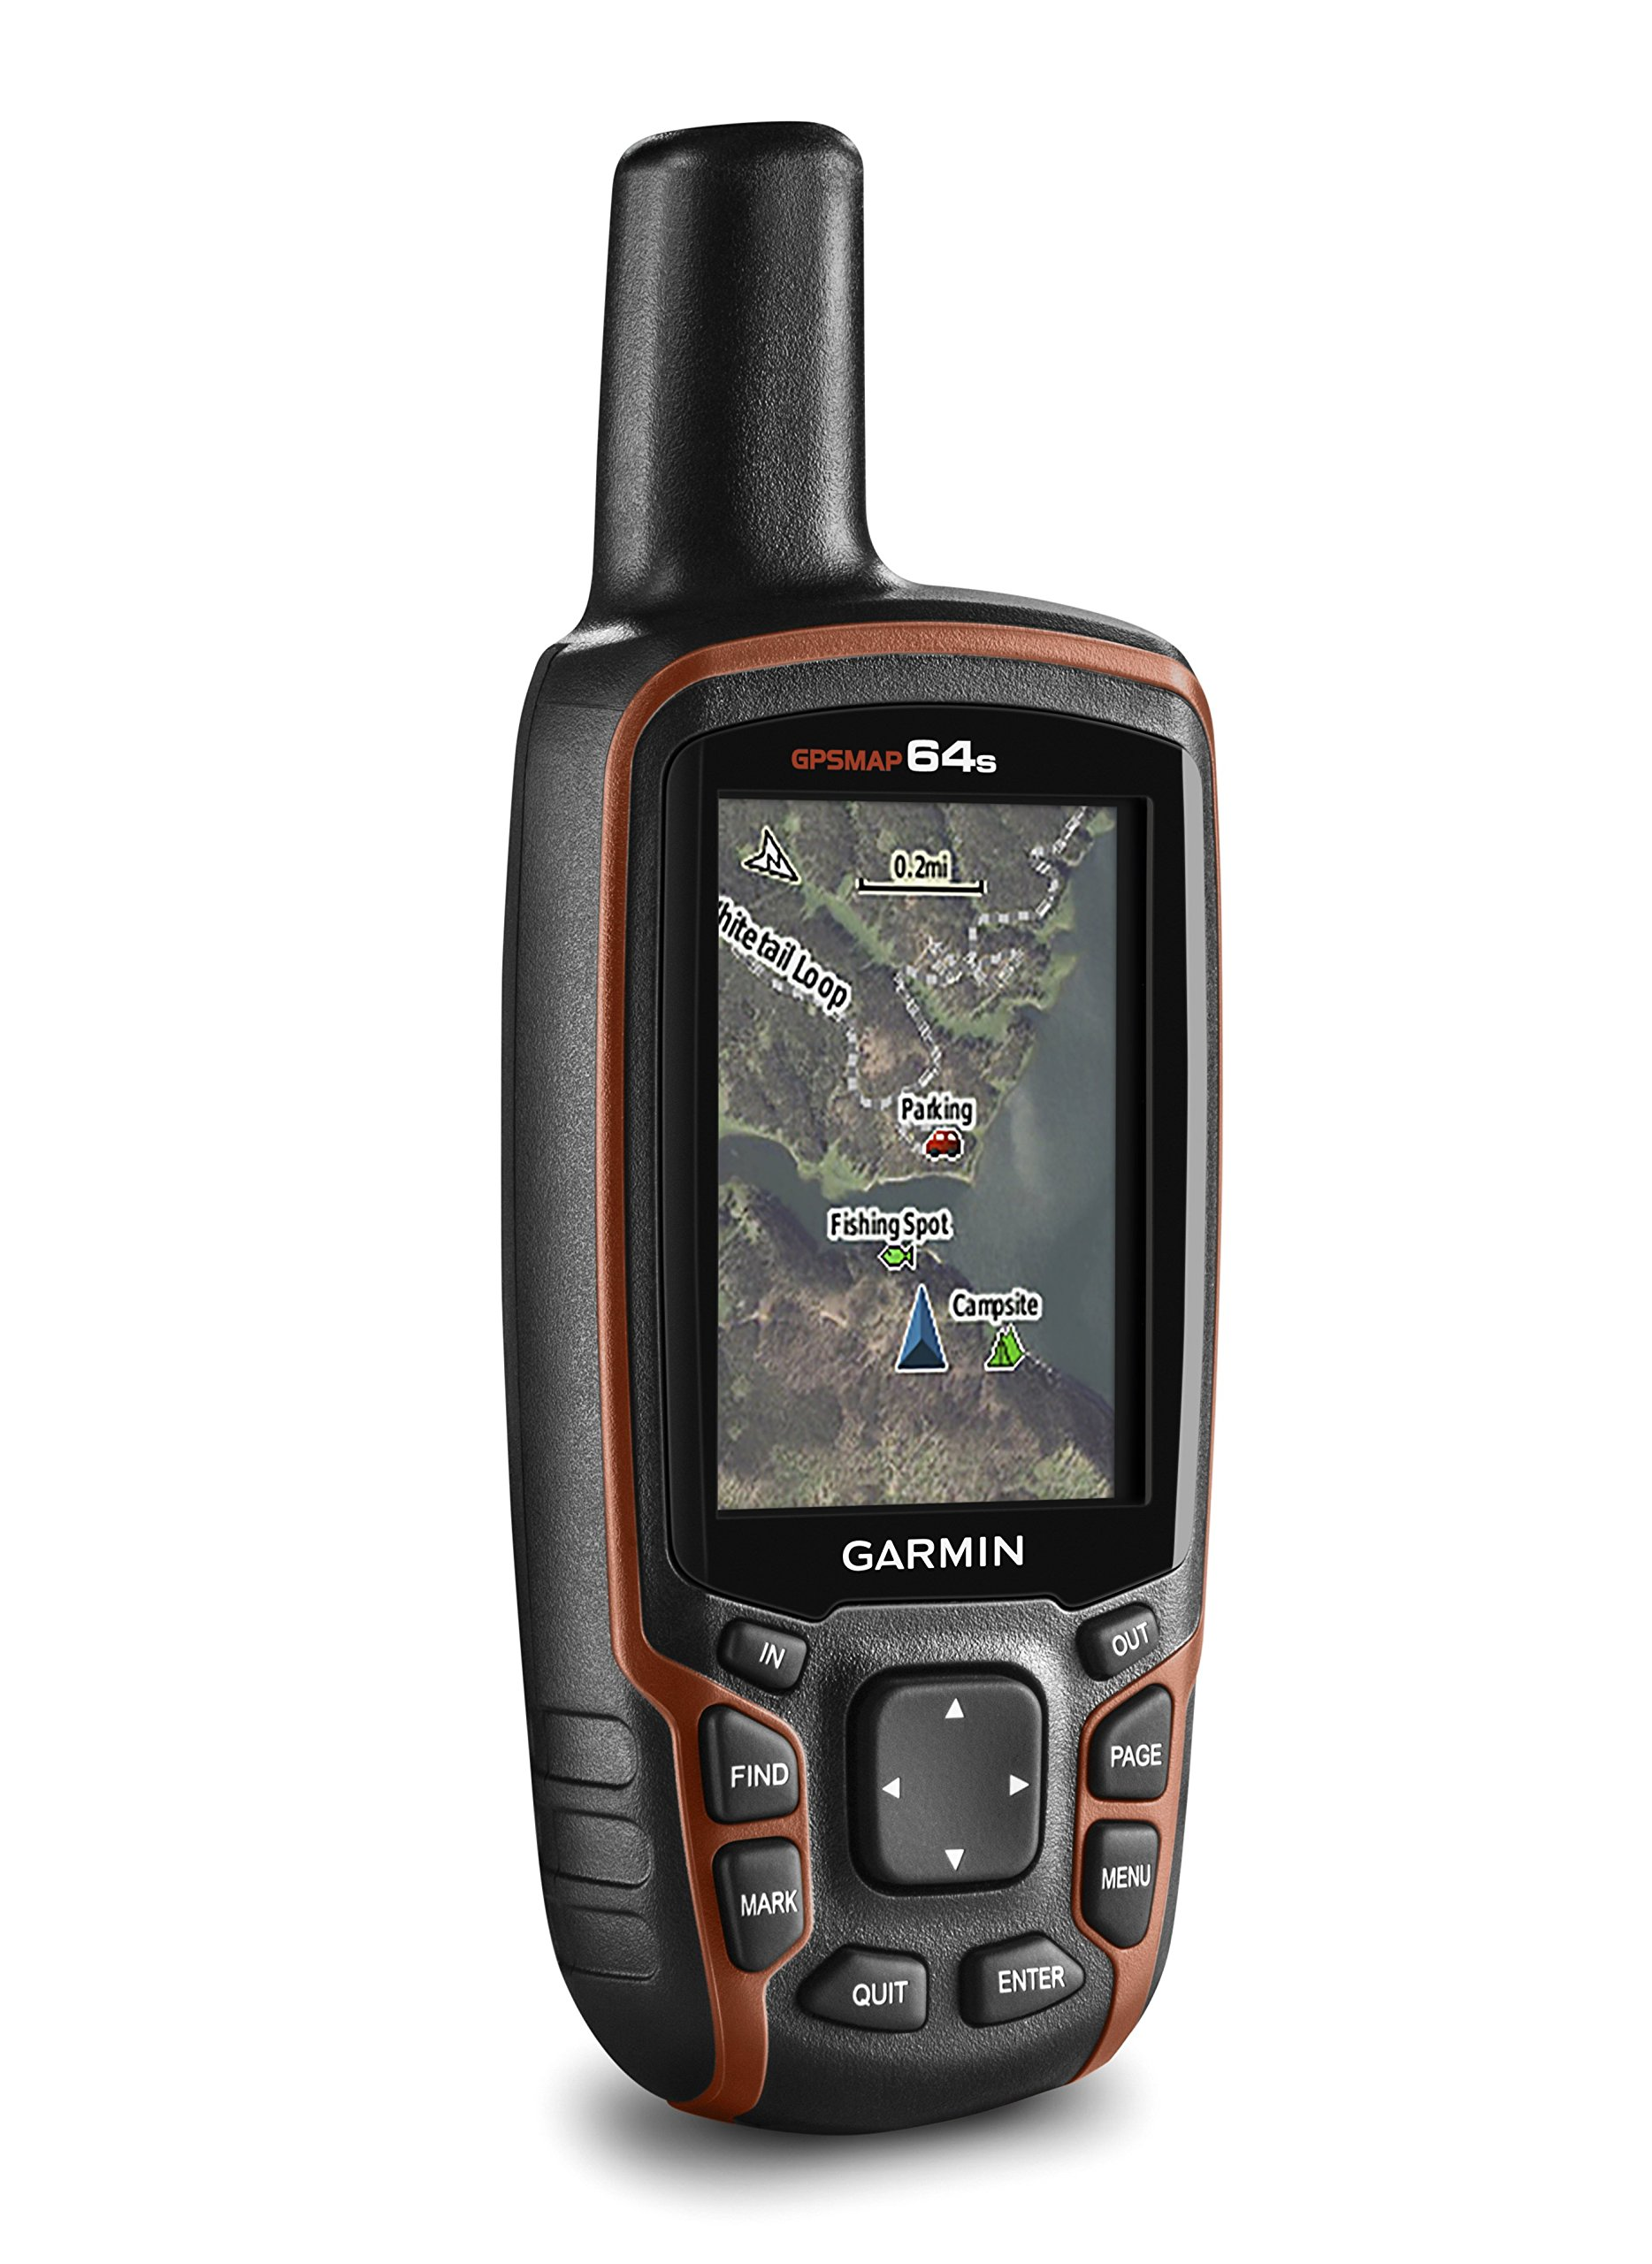 Garmin GPSMAP 64s Handheld Navigator,Black/Red 2